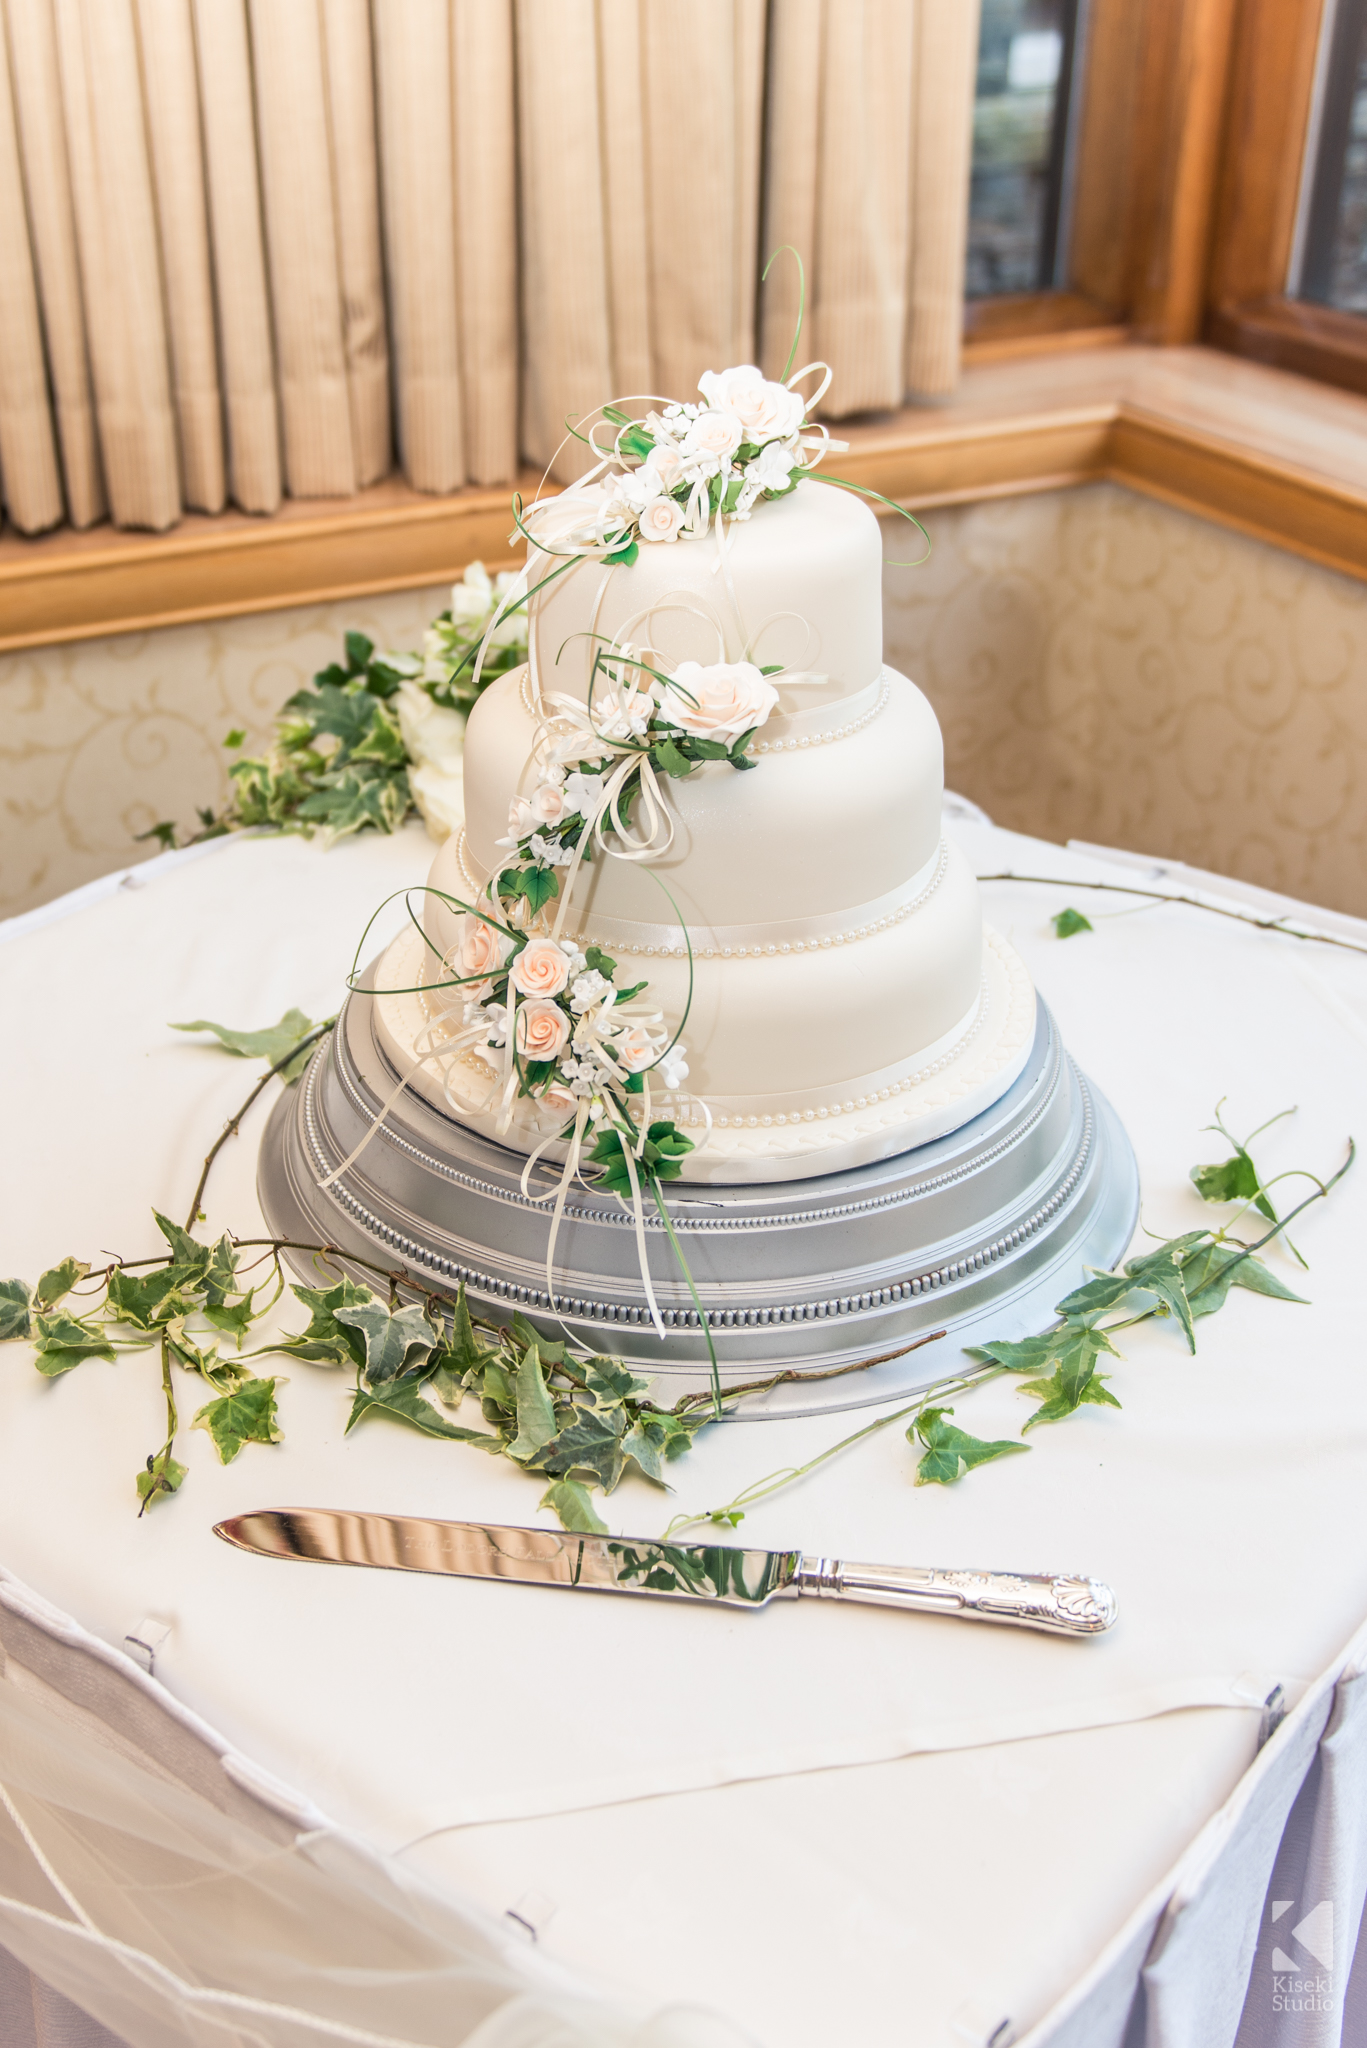 white-wedding-cake-tier-knife-fresh